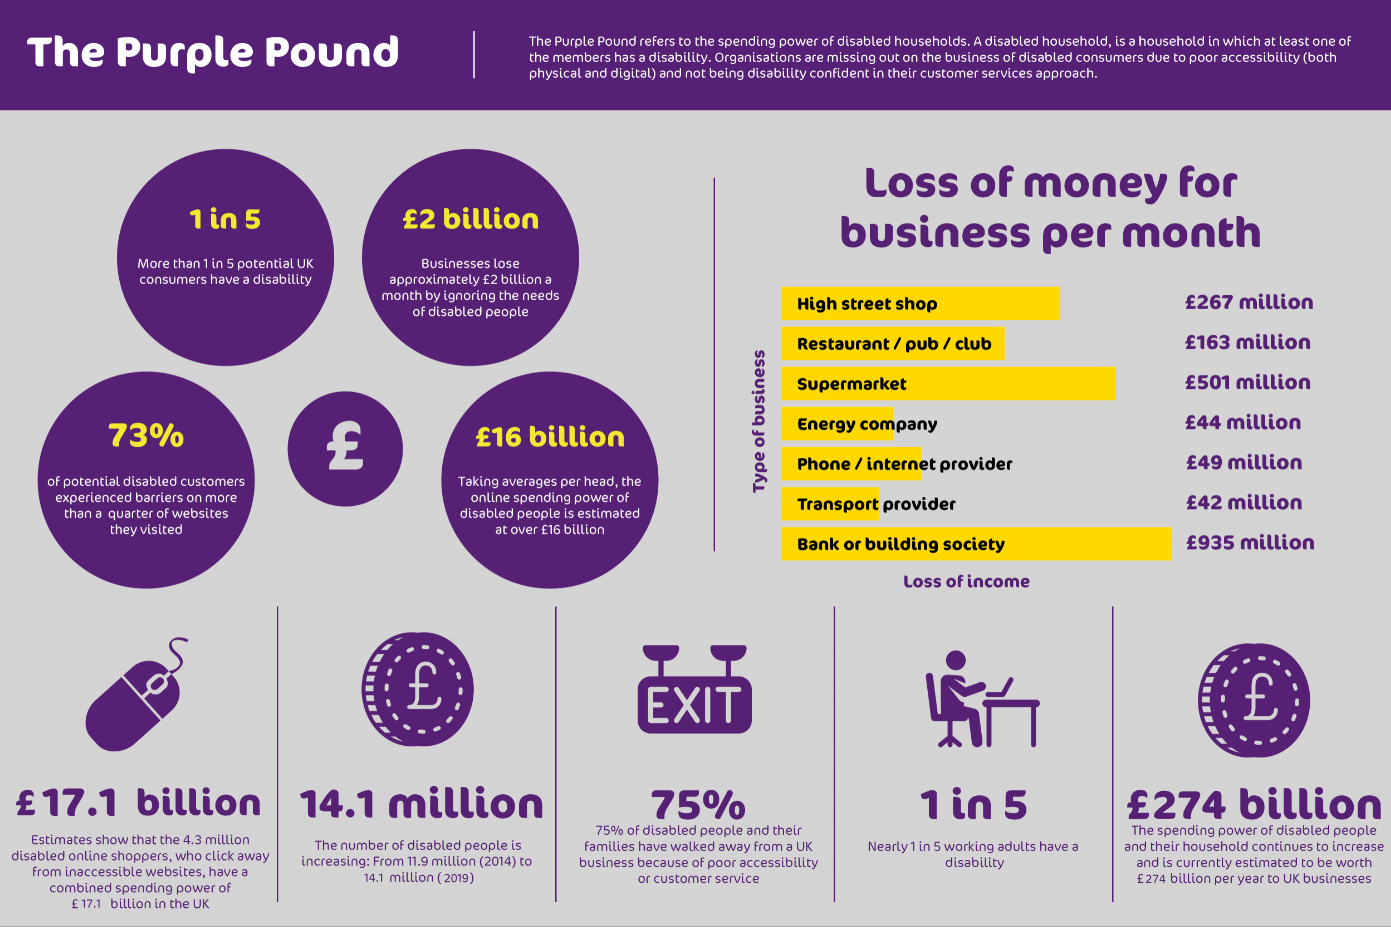 Infographic detailing the £157 billion spending power of disabled people and their households in the UK.